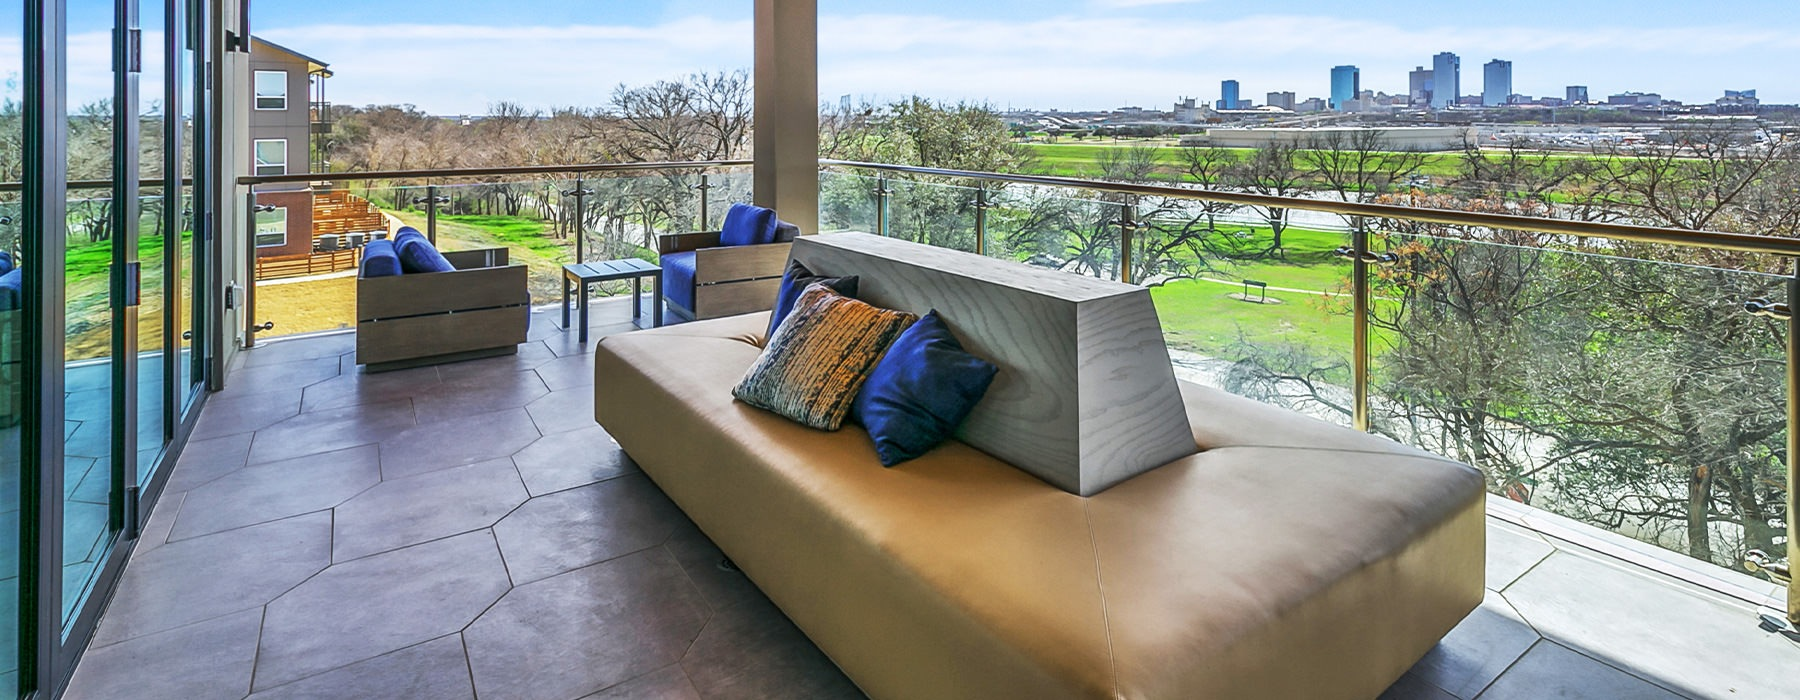 Resident deck with a view of Downtown Fort Worth